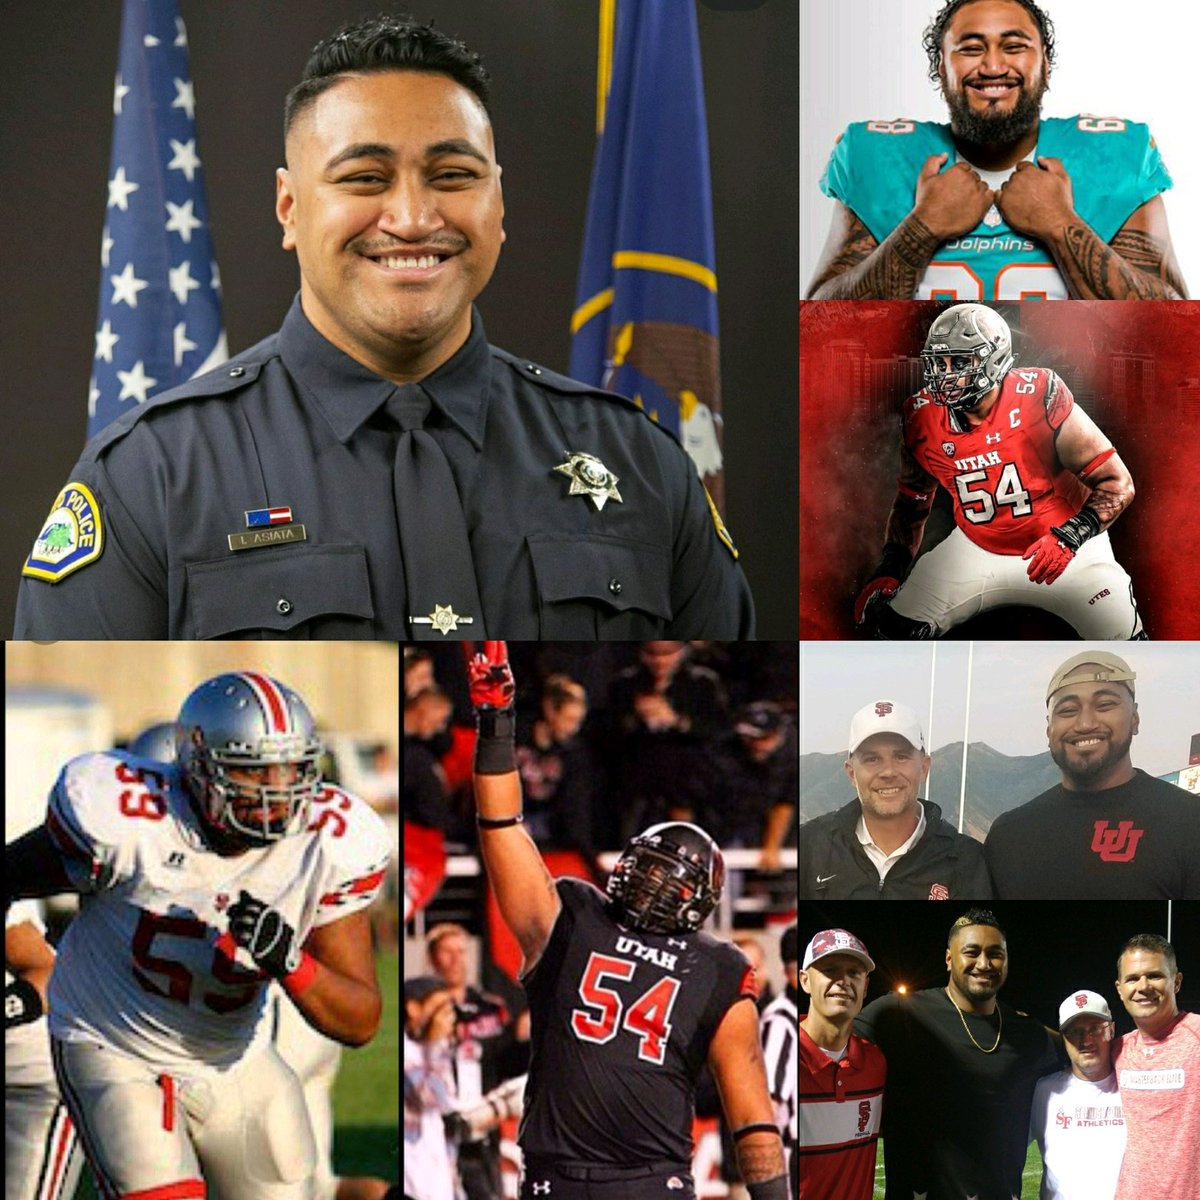 Spanish Fork Don ➡️ Utah Ute ➡️ Miami Dolphins ➡️ Provo City Police Force.  That a boy Issac Asiata! We are proud of you! #SFDons https://t.co/XQb6j2kAWj